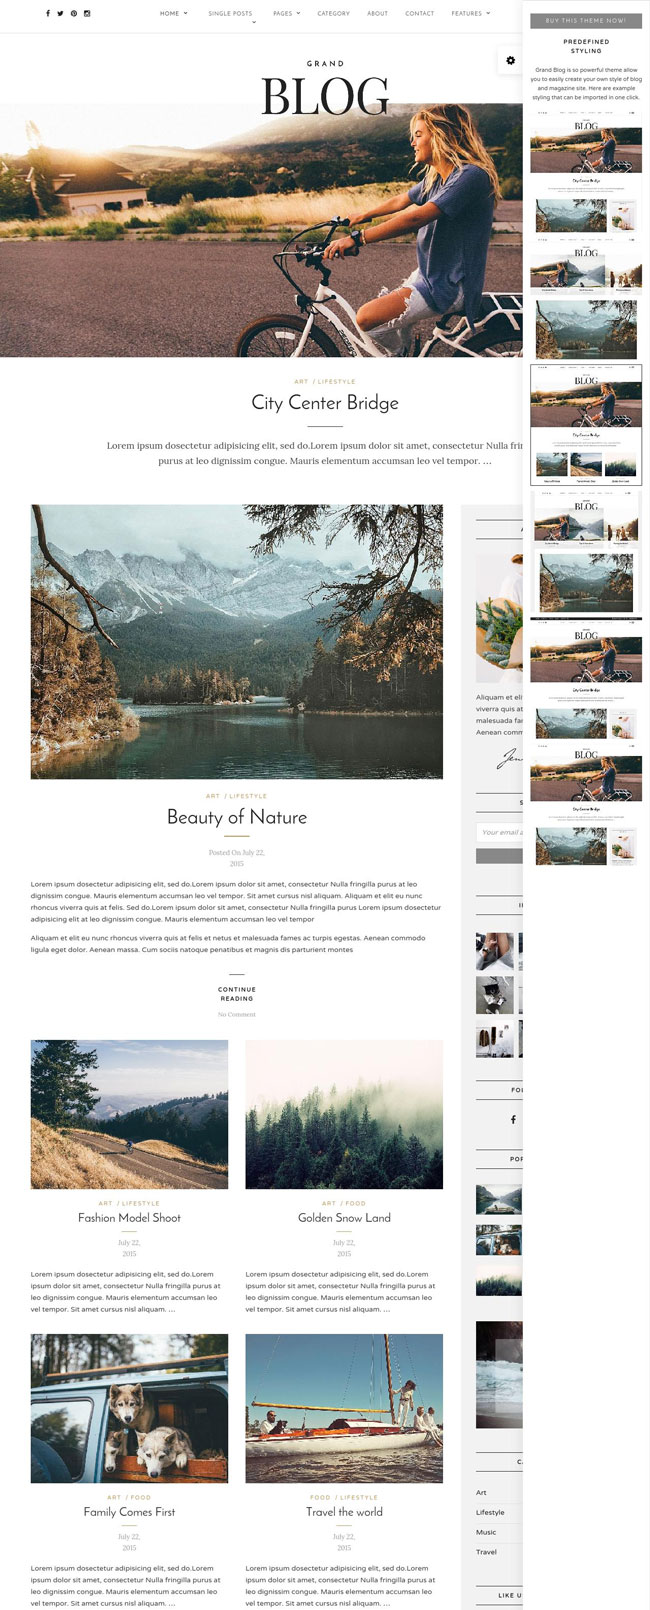 Grand-Blog-Clean-and-Minimal-Wordpress-Blog-Theme